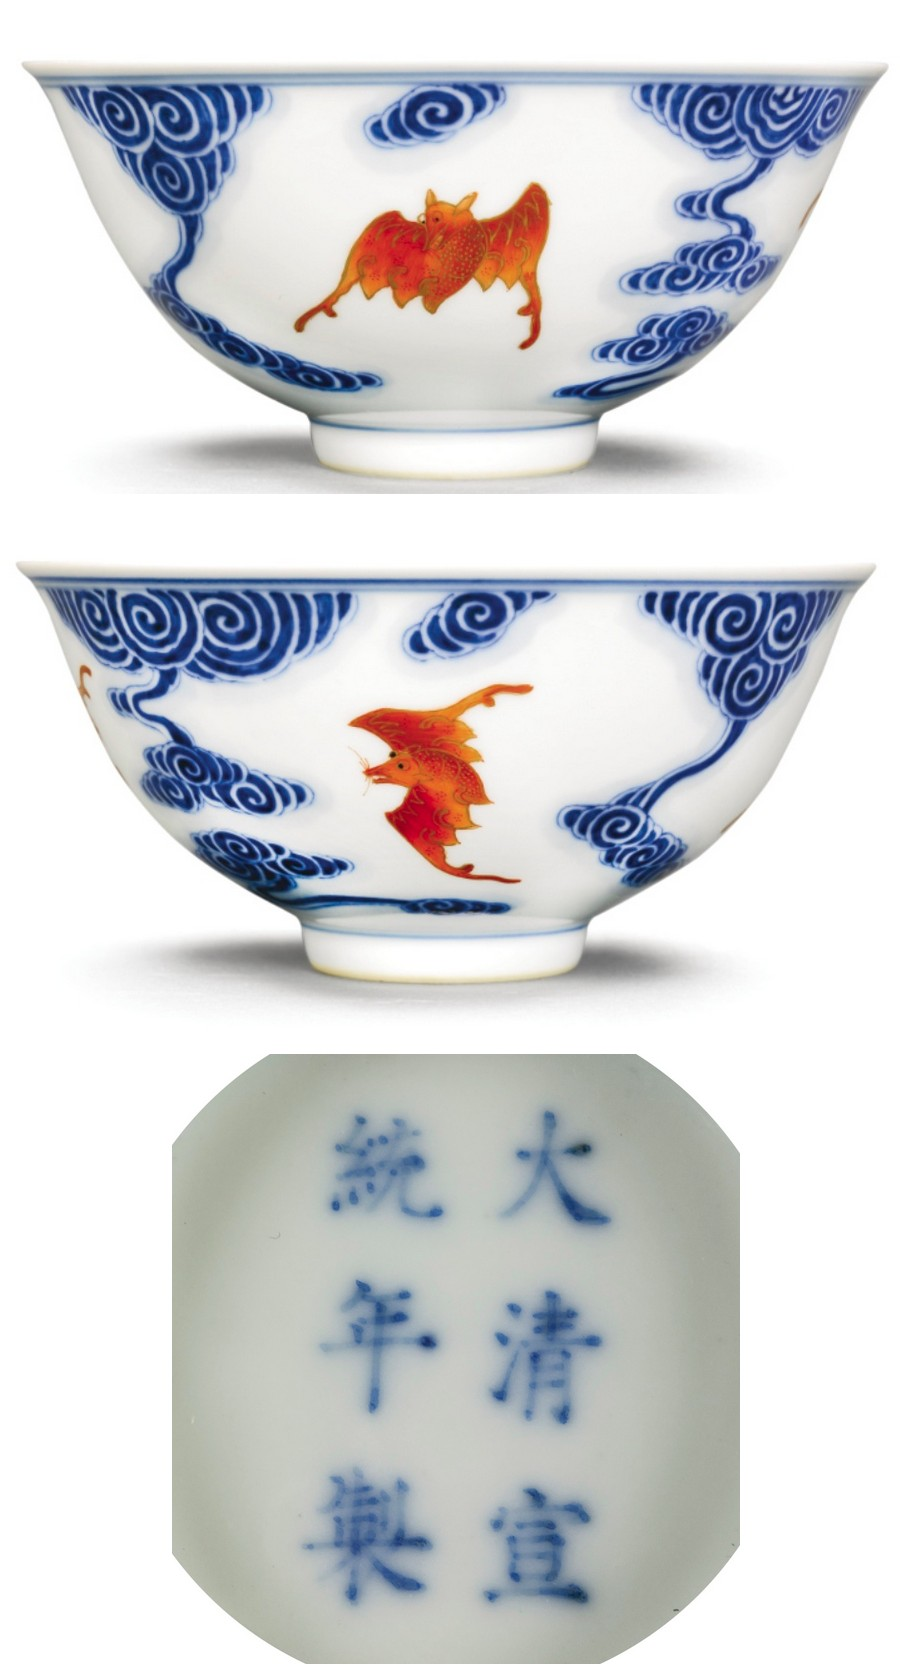 Marks on Chinese Porcelain - The Qing Dynasty (5-5) and